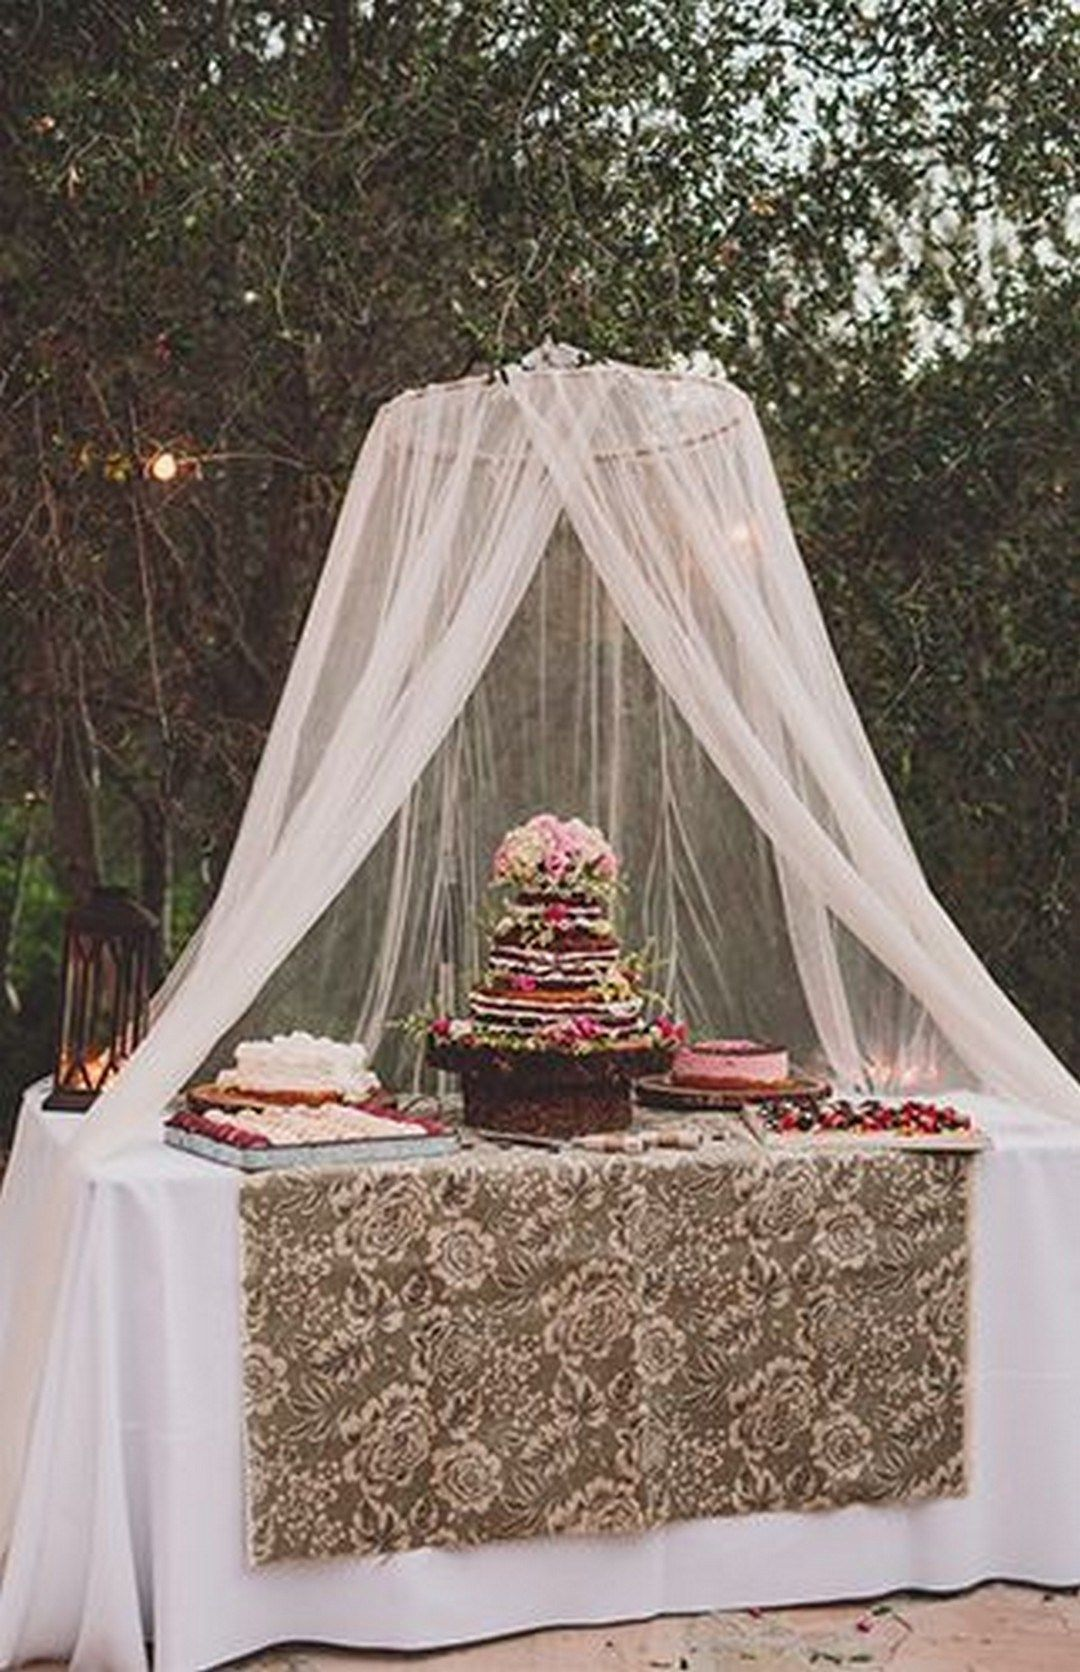 99 sweet ideas for romantic backyard outdoor weddings 73